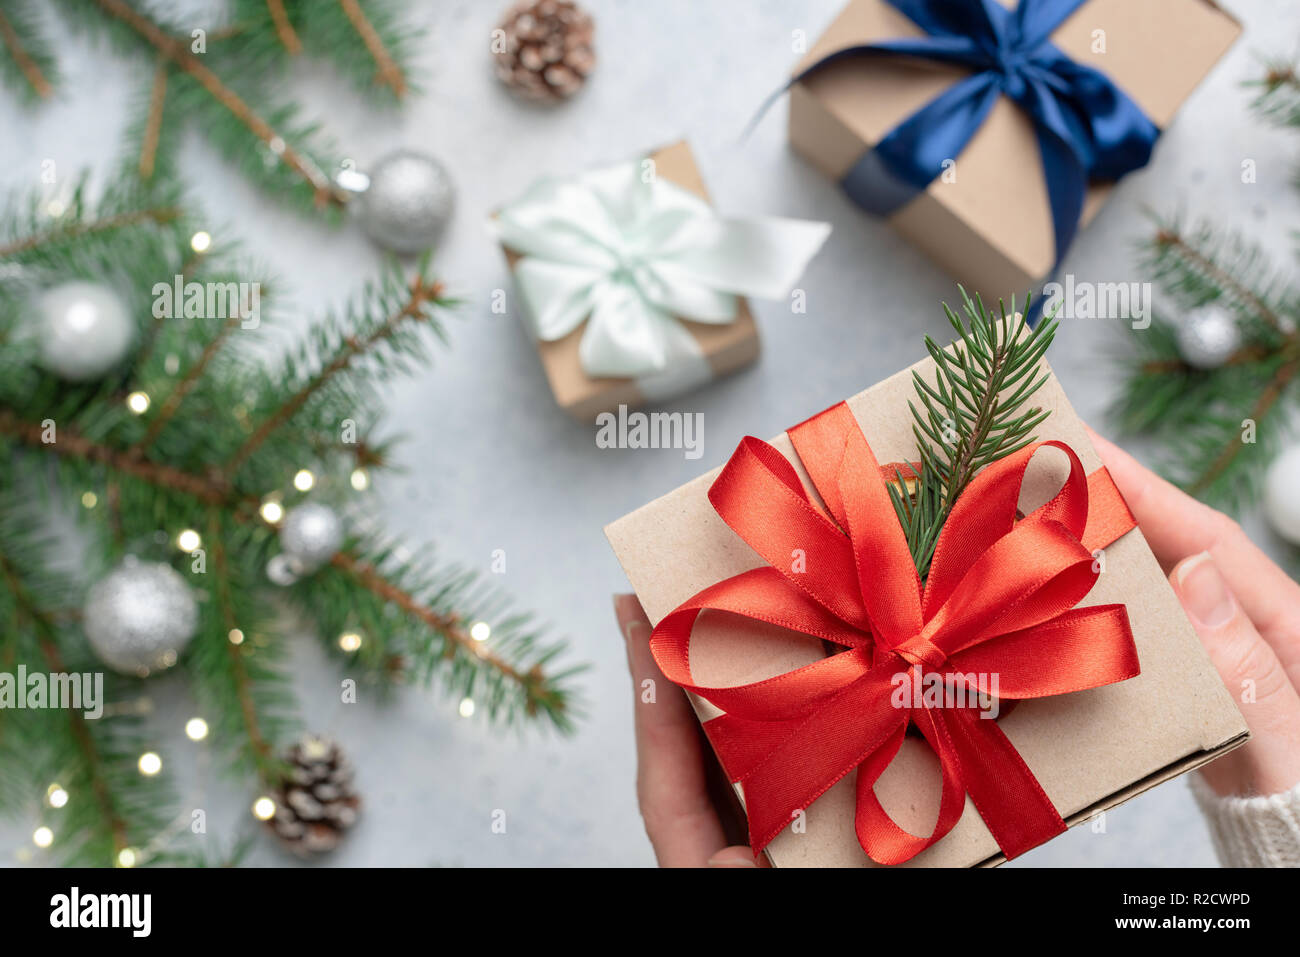 Christmas Gift Box Craft Paper Red Lace Winter Shopping Christmas Holidays Background Concept Stock Photo Alamy